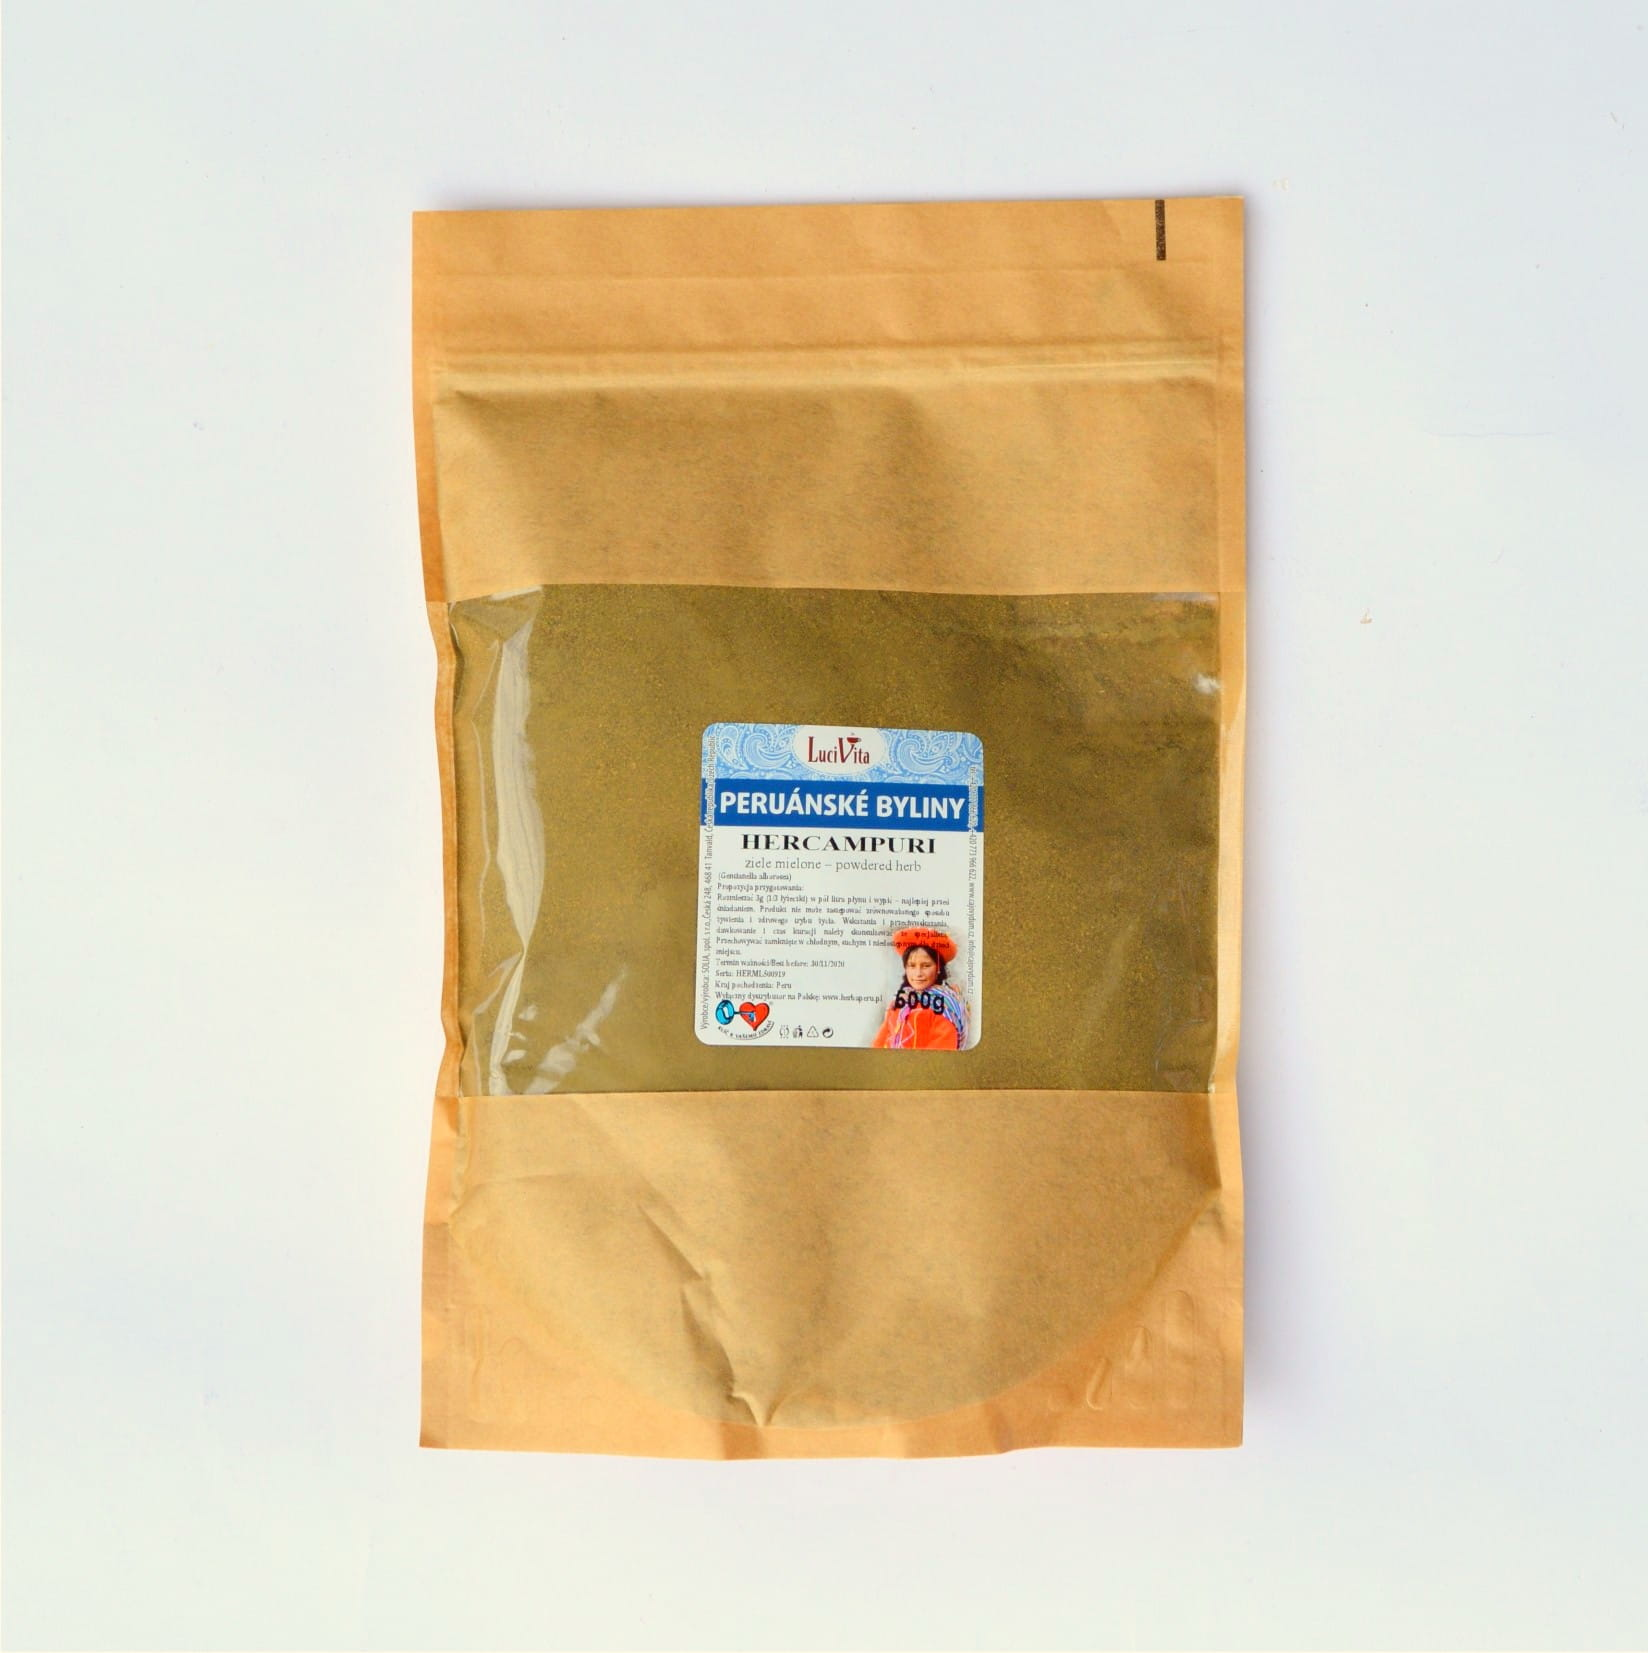 Hercampuri - powdered herb - 500g